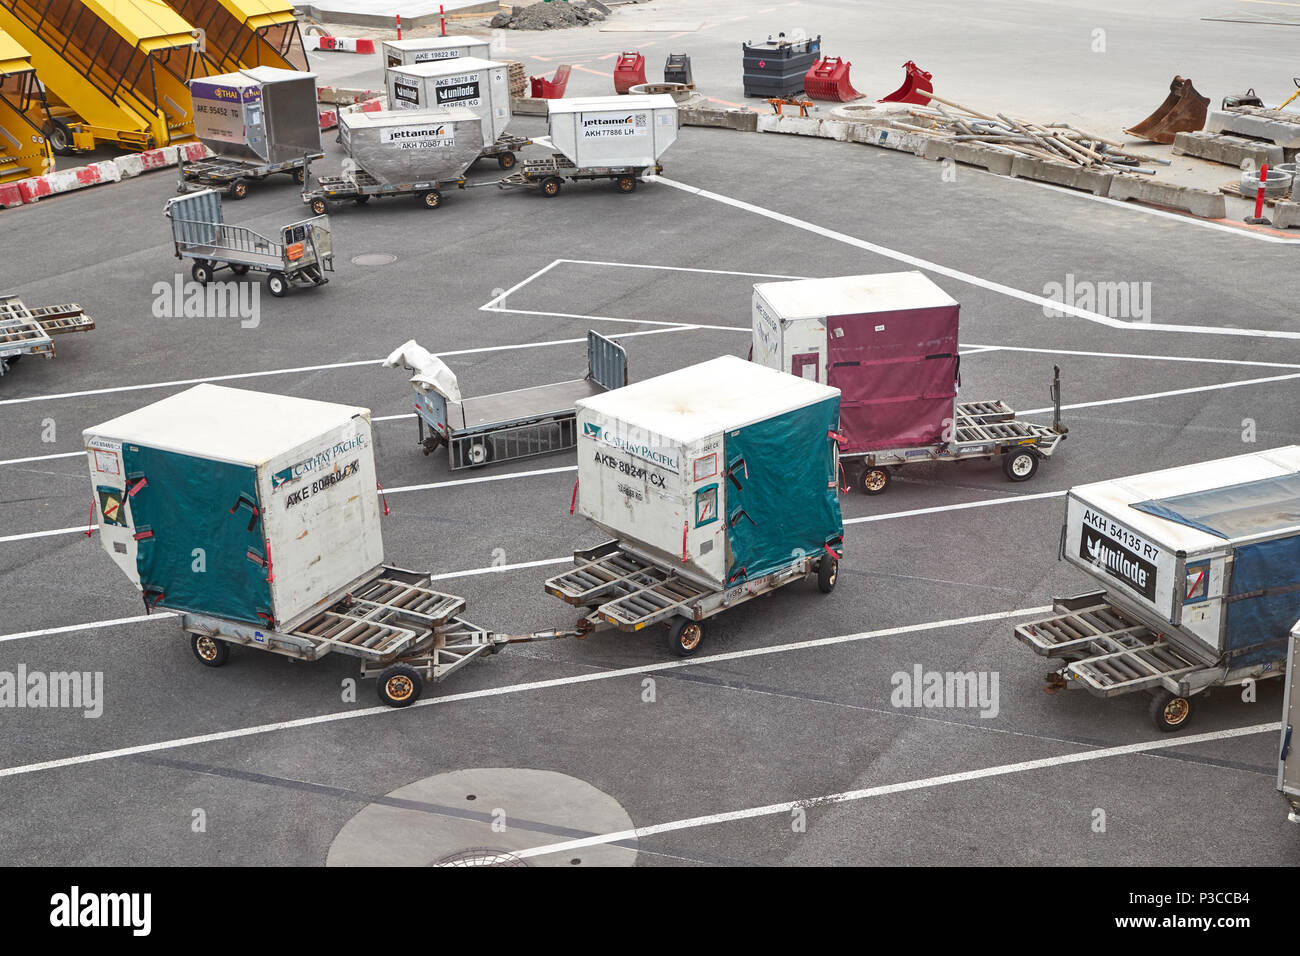 Air Cargo Containers - Stock Image